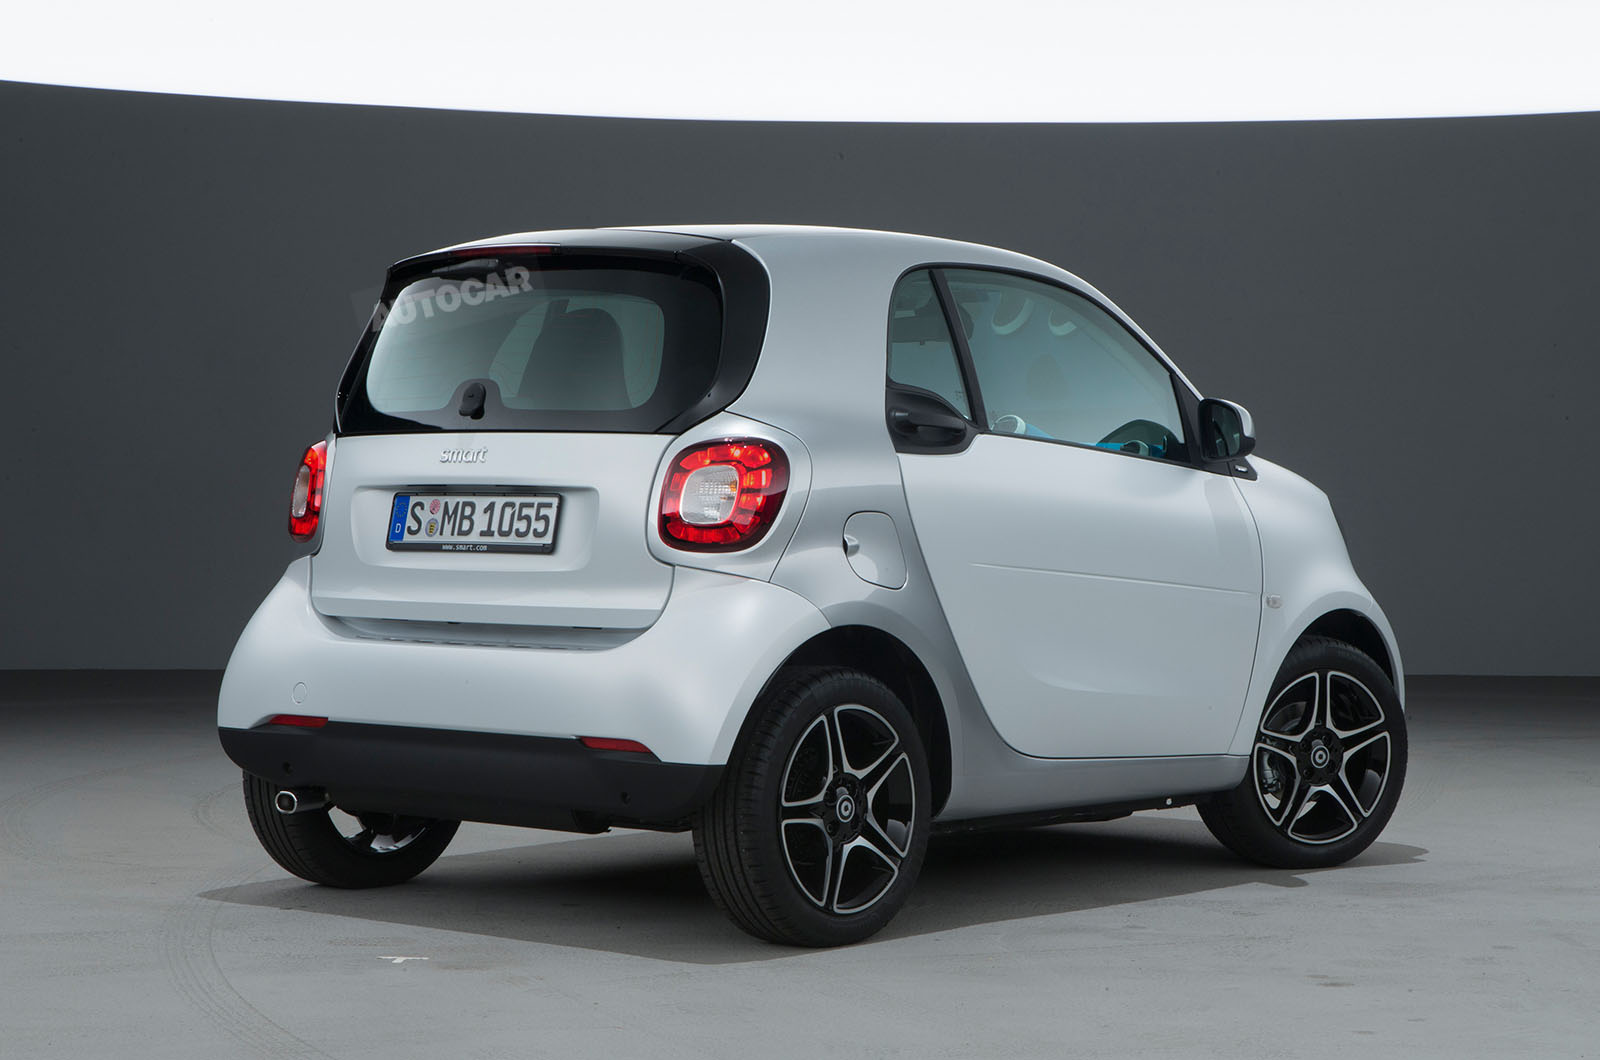 Chevy Concept Cars 2015 2016 Smart Fortwo and ...